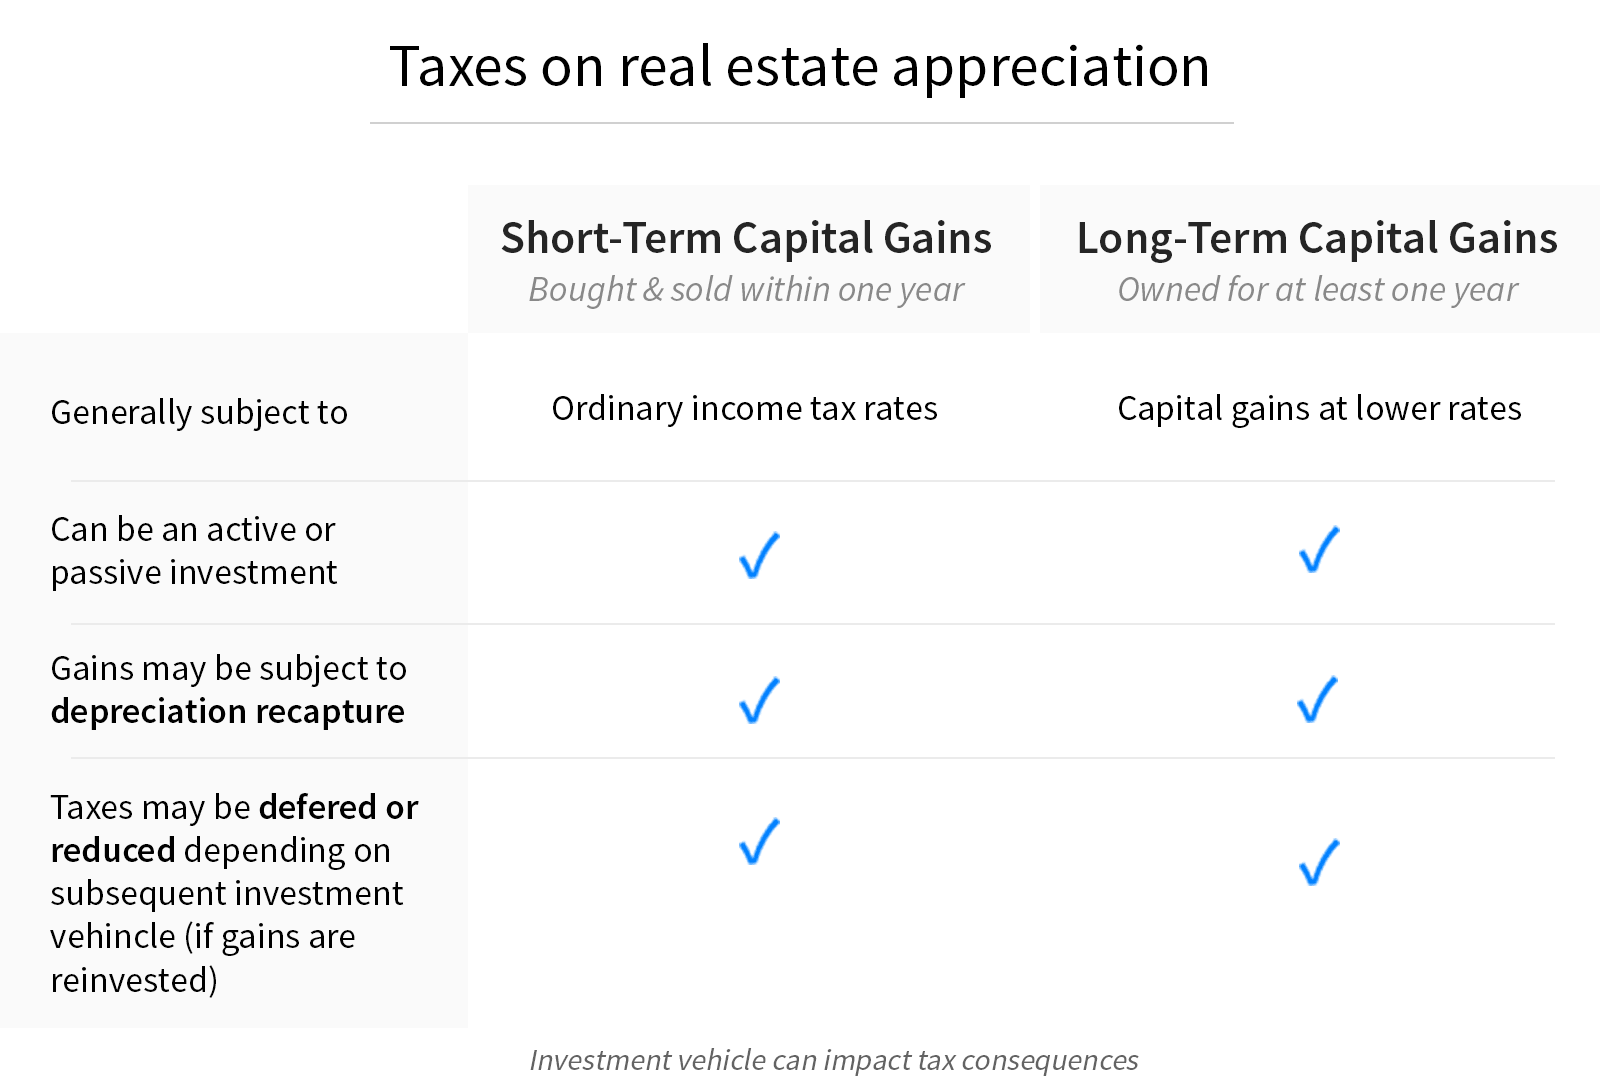 real-estate-investing-taxes-appreciation-captial-gains